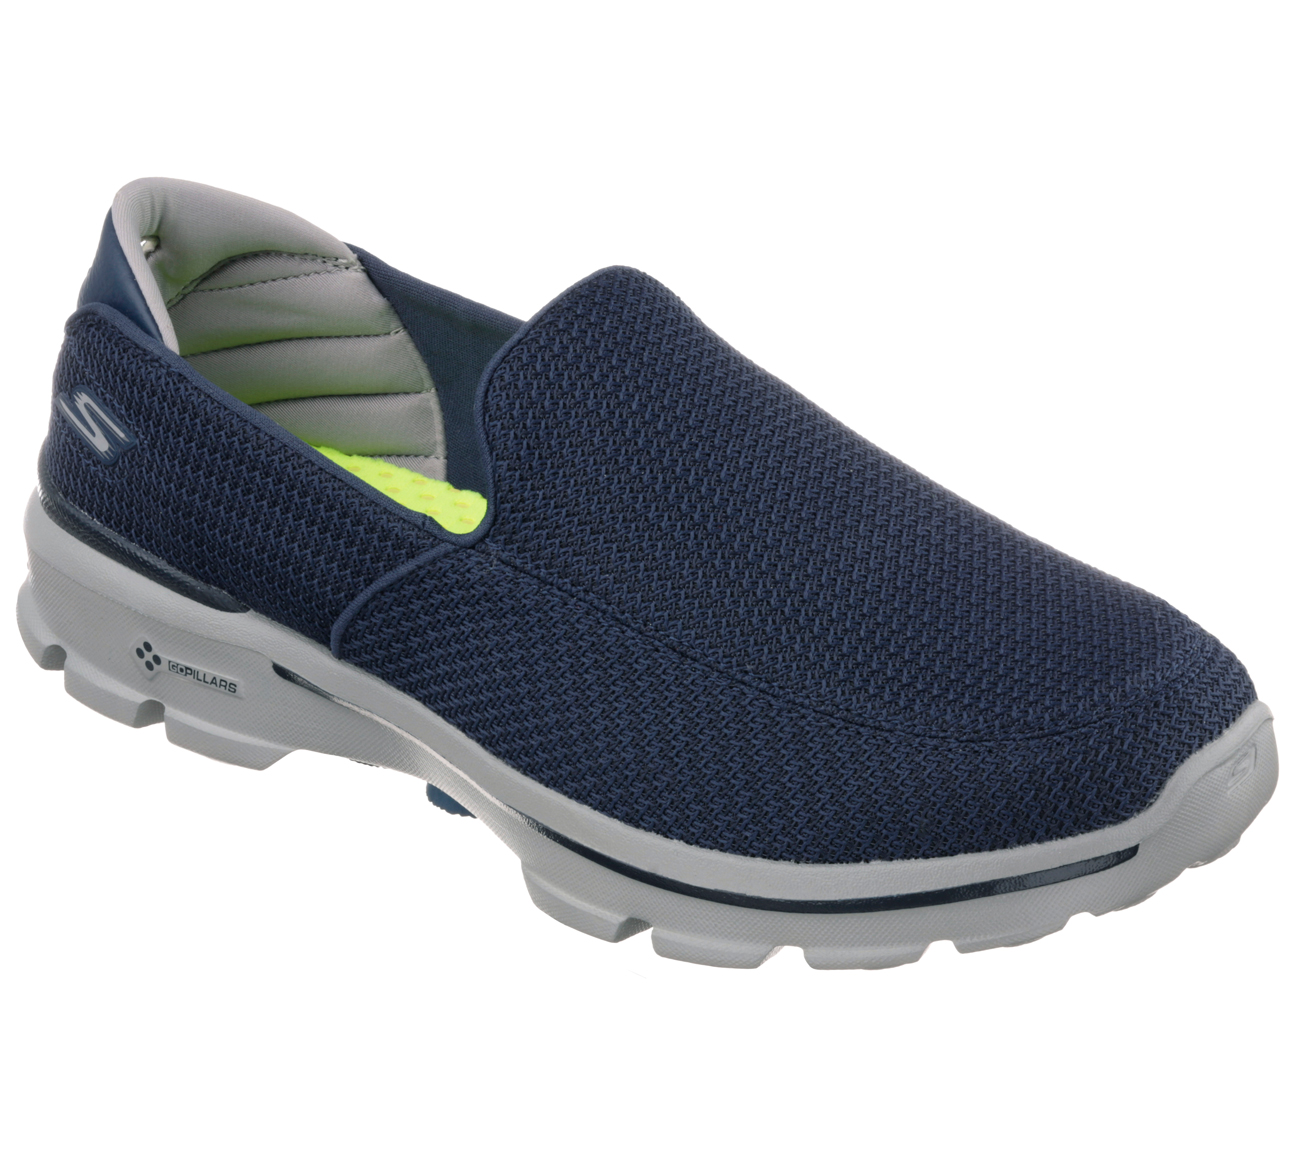 Skechers Mens Go Walk 3 Slip On Walking Shoes Lightweight